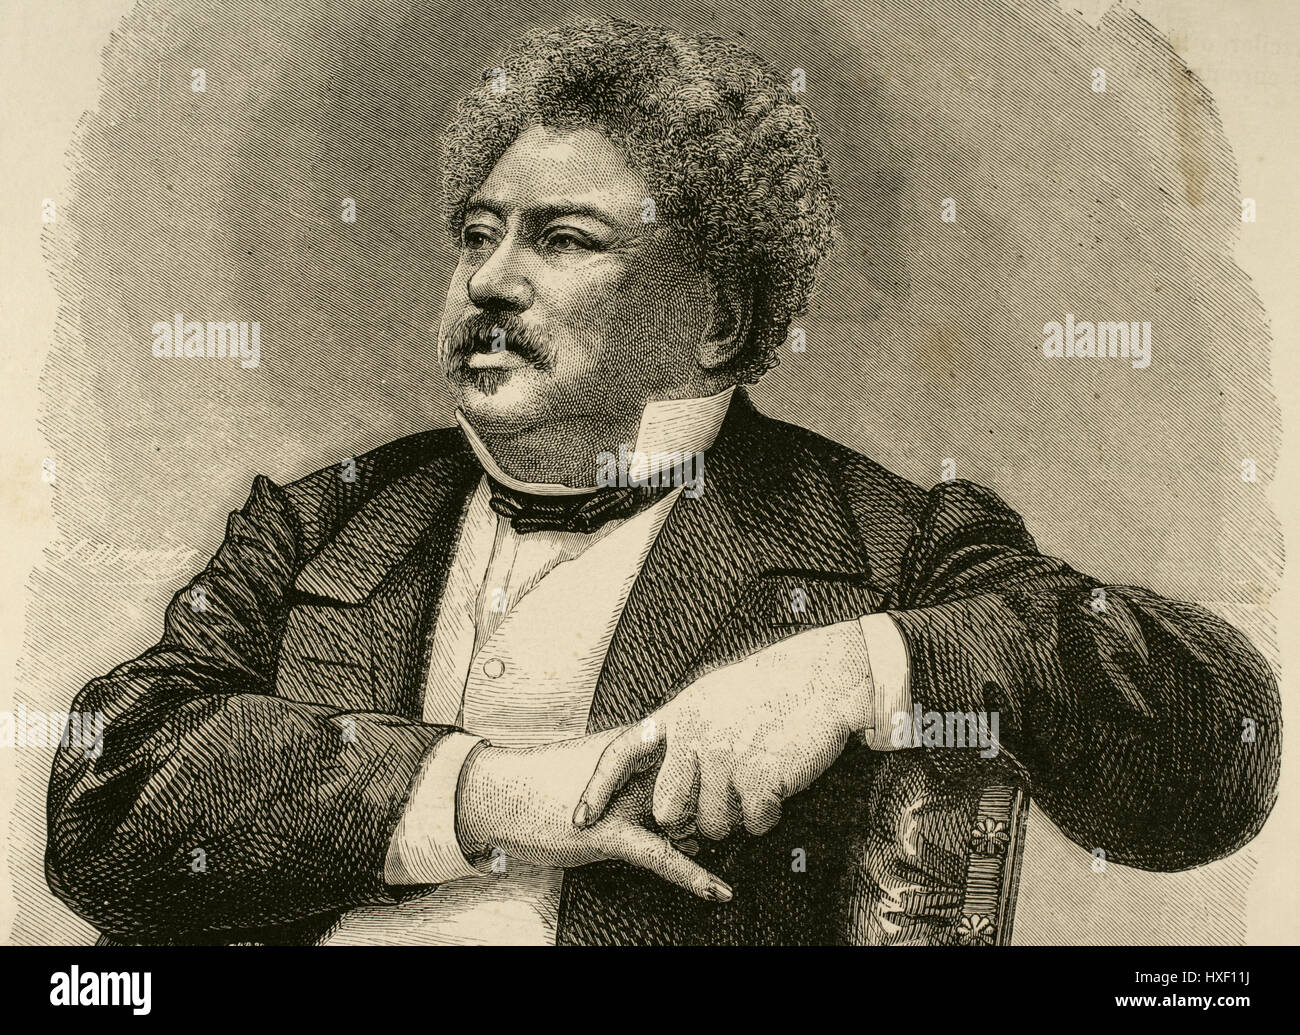 Alexandre Dumas (1802-1870). French writer. Romanticism and Historical fiction literary movement. Portrait. Engraving. - Stock Image